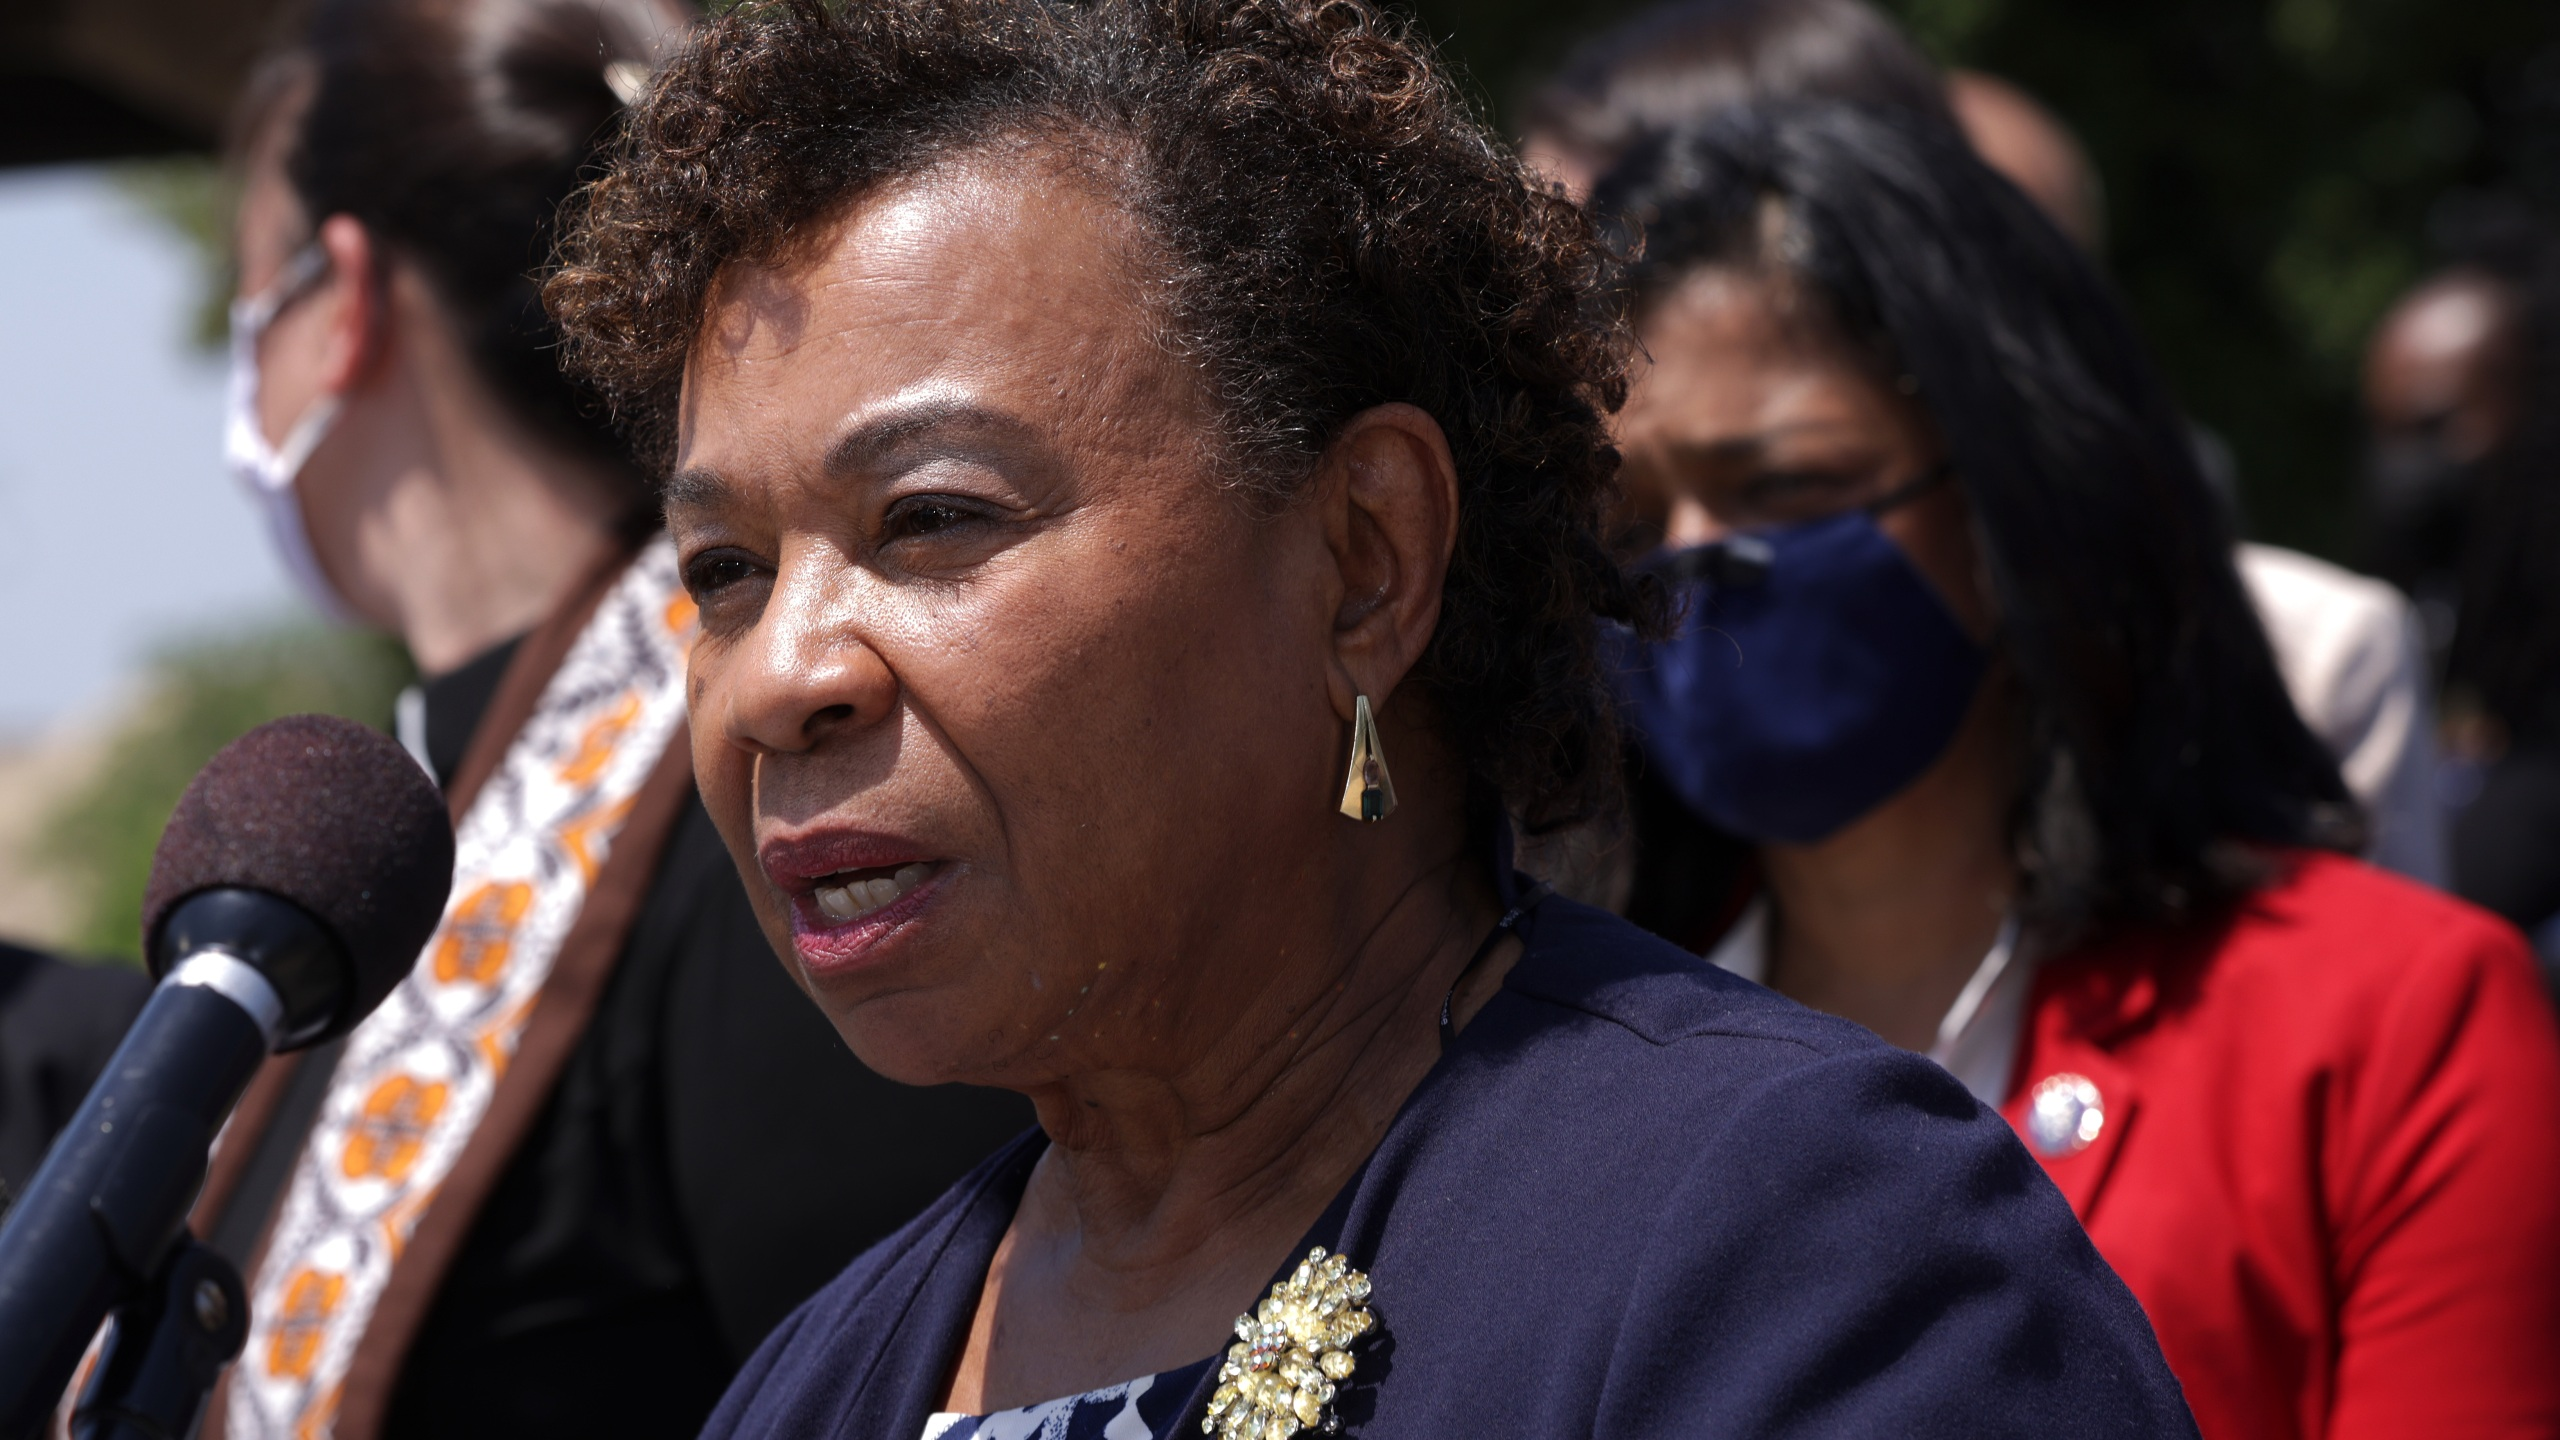 U.S. Rep. Barbara Lee (D-CA) participates in a news conference outside the U.S. Capitol May 20, 2021 in Washington, DC. (Alex Wong/Getty Images)